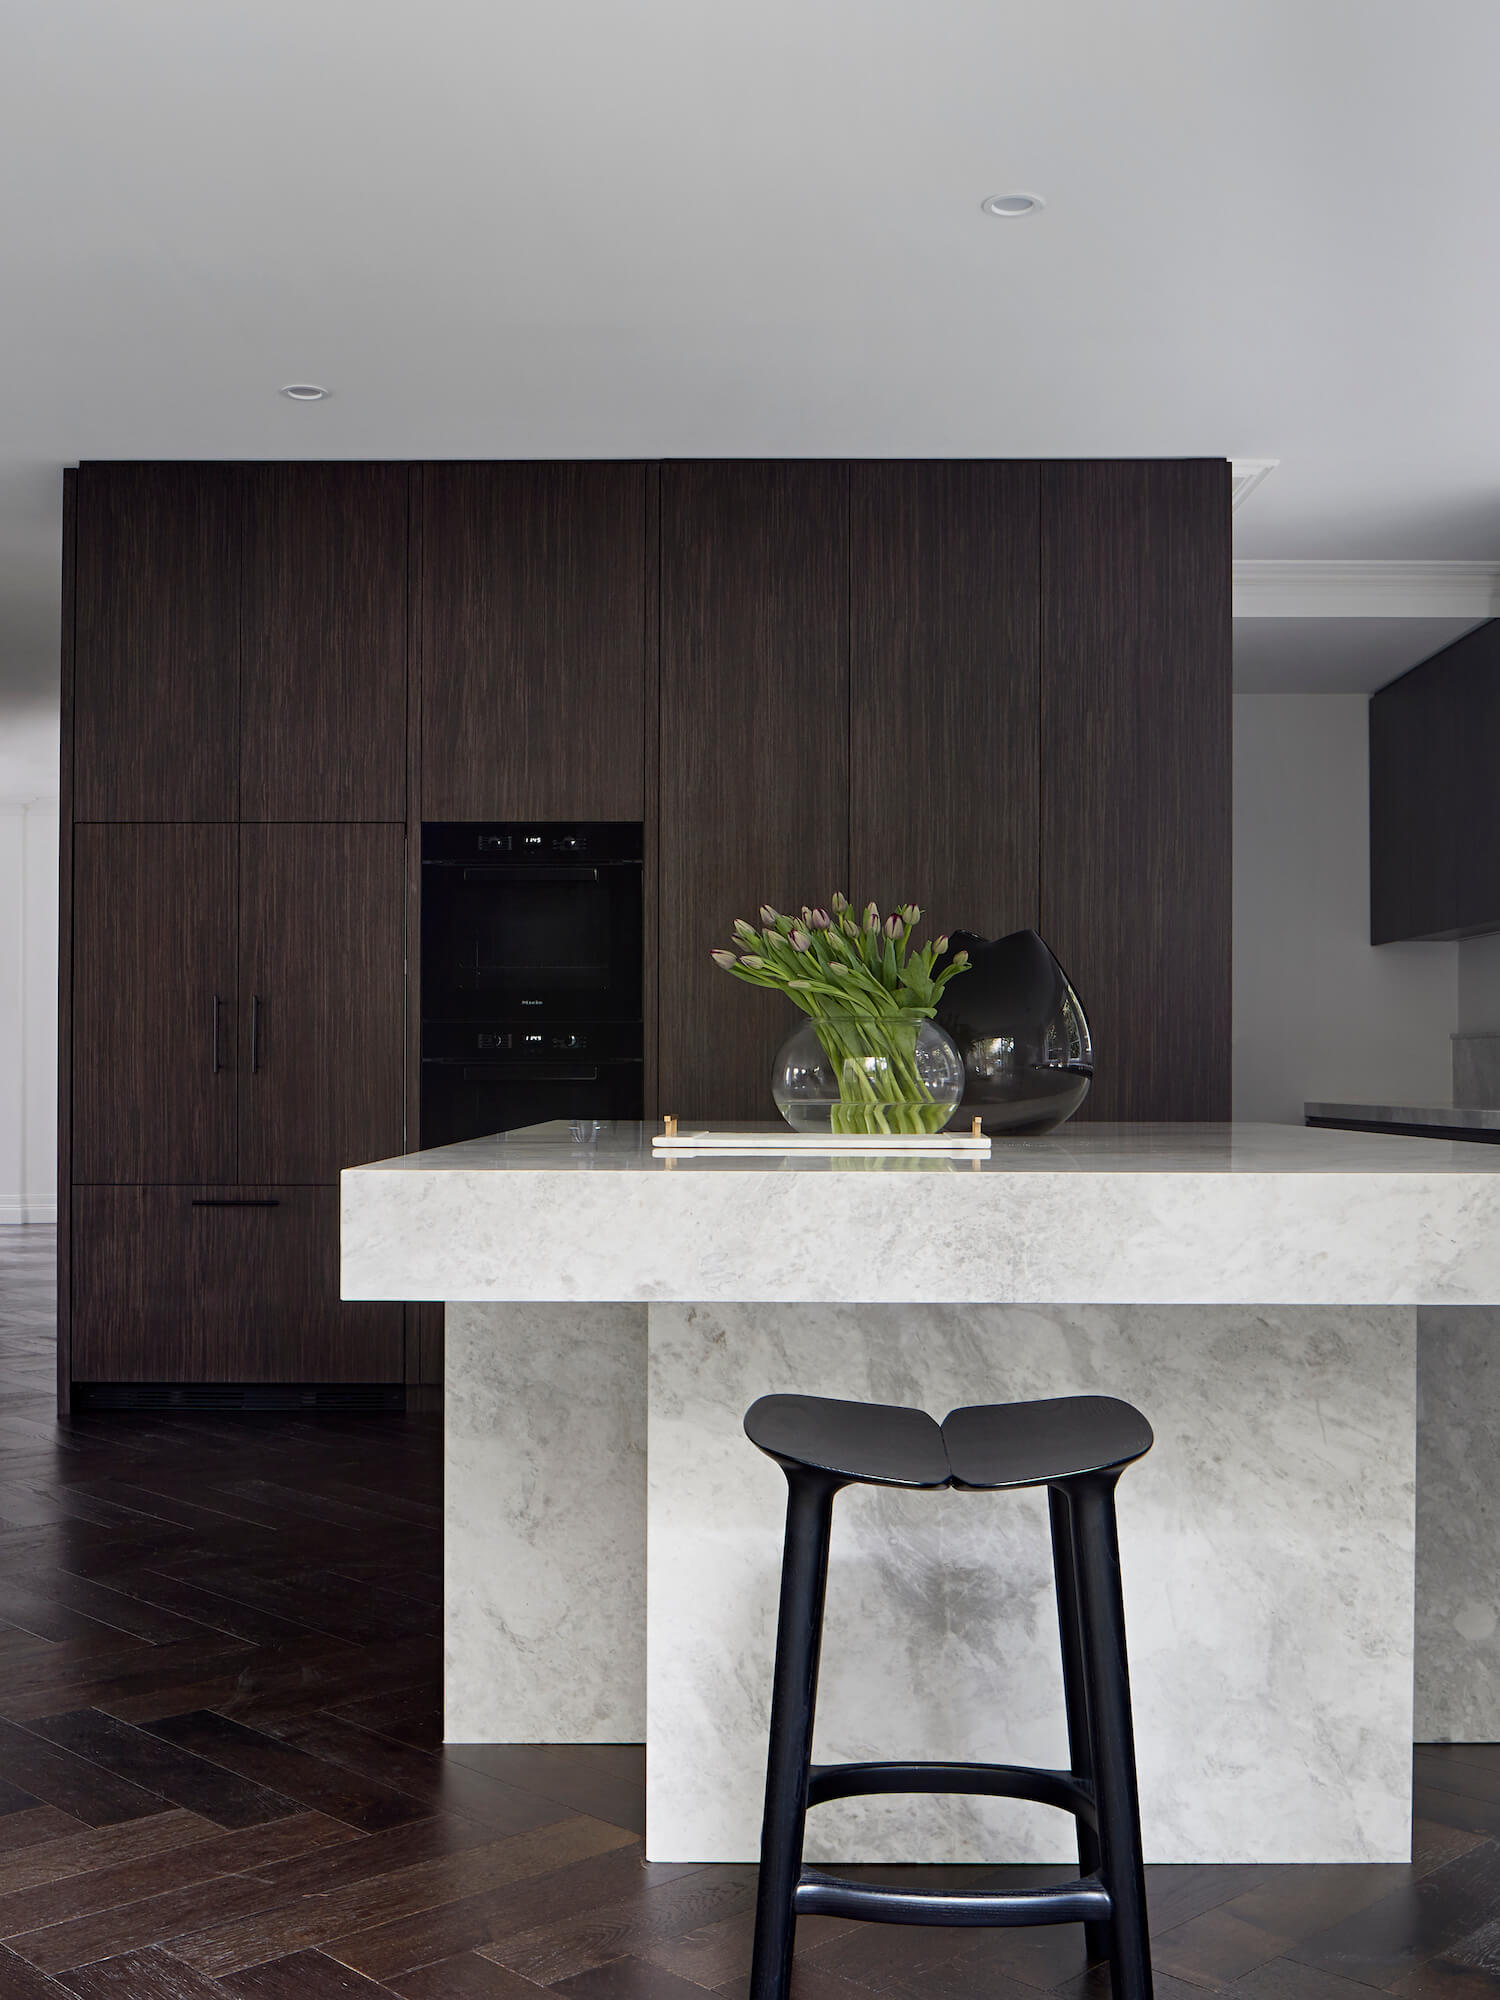 est living interiors 17 Glen Road Toorak Lauren Tarrant Design 5